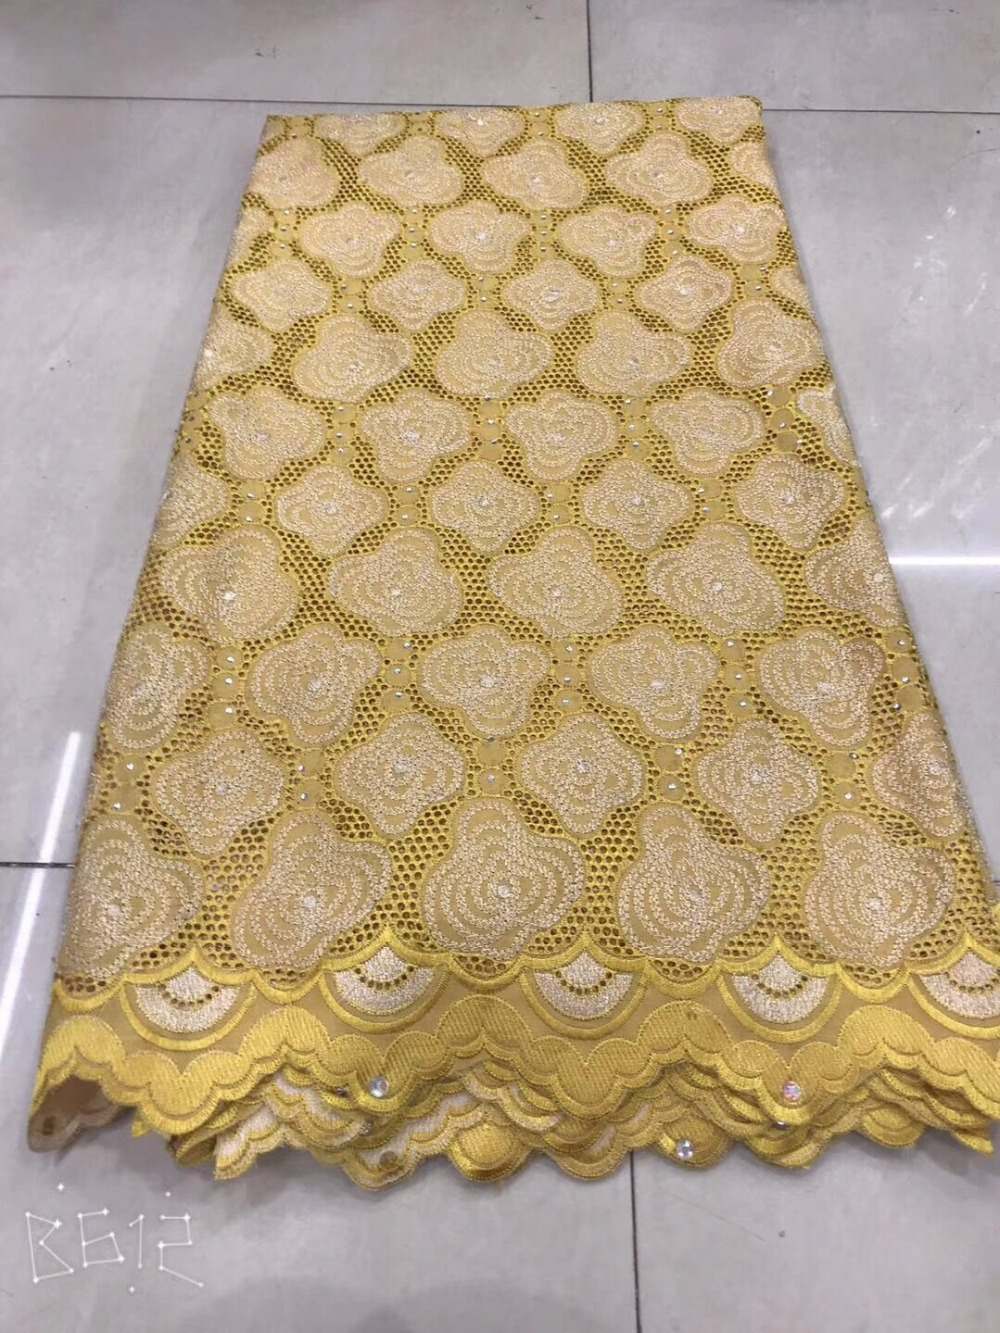 New Swiss voile lace fabric, high quality African Swiss voile lace fabric with exquisite stones